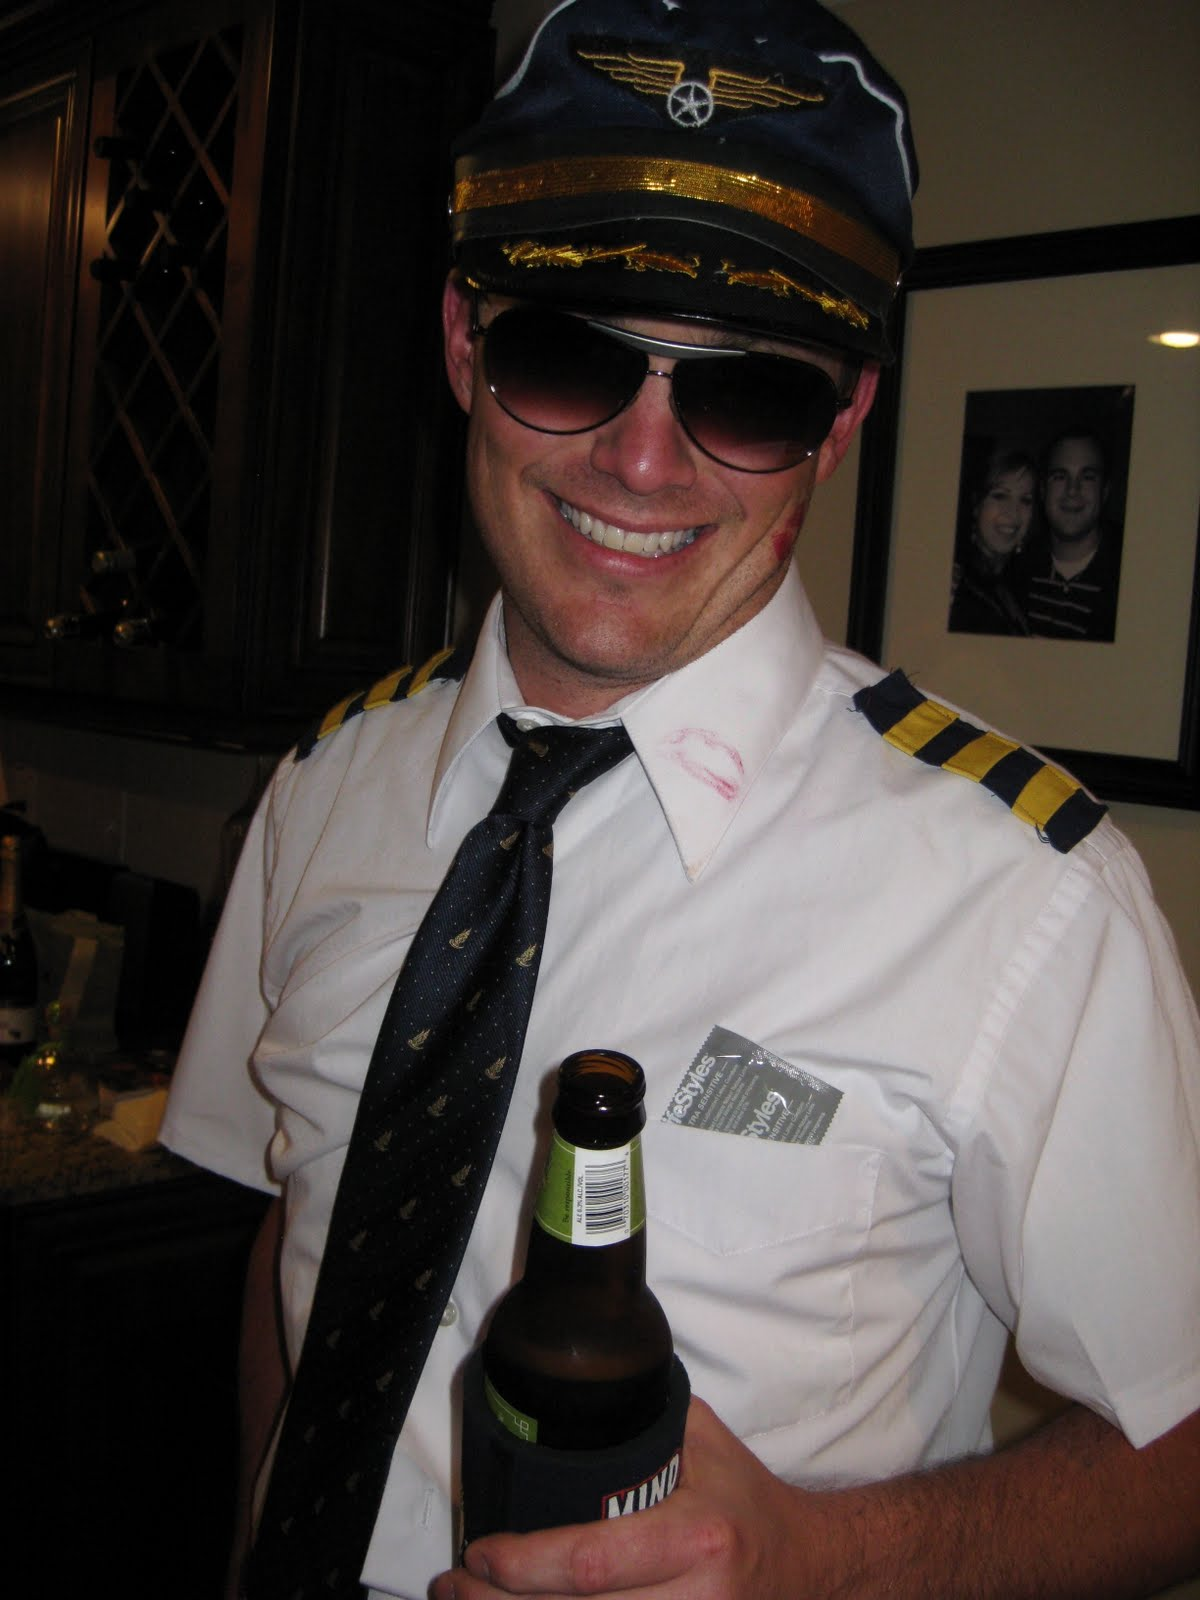 At work on Monday I told people we dressed as an airline pilot and a flight attendant... though as a couple we had a different name for our costume.  sc 1 st  Katy Streams Her Consciousness & Katy Streams Her Consciousness: Halloween 2010 Costumes Revealed